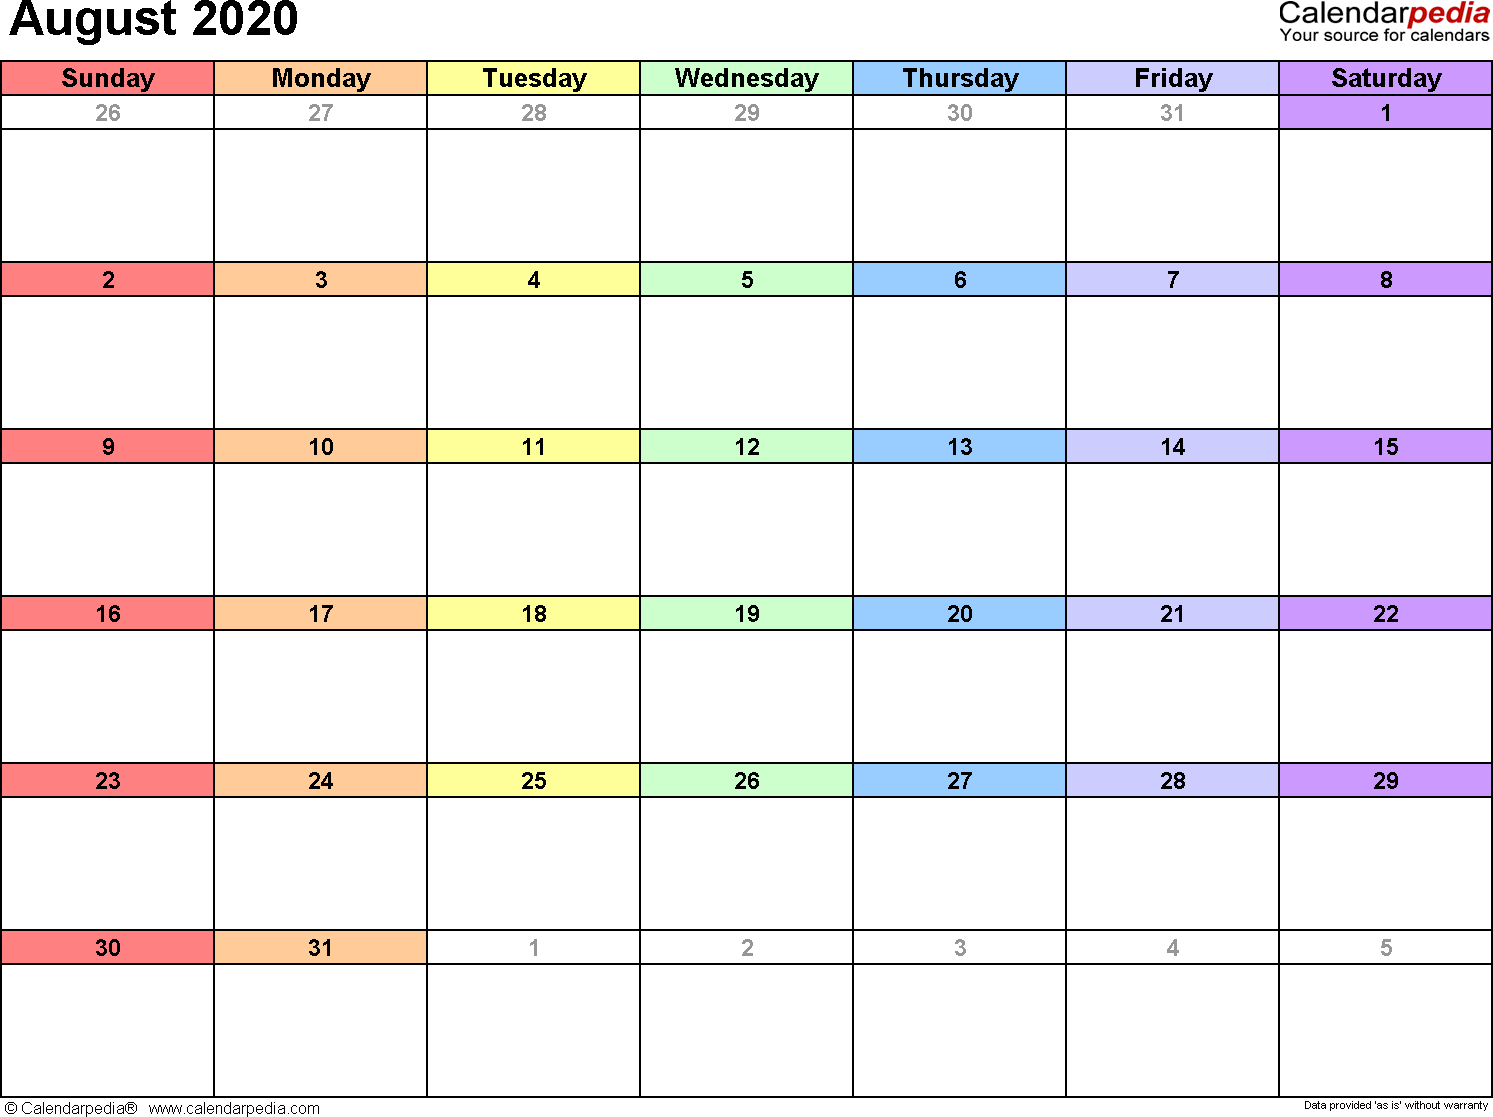 August 2020 Calendars For Word, Excel & Pdf pertaining to Kid Freiendly August 2020 Calendars